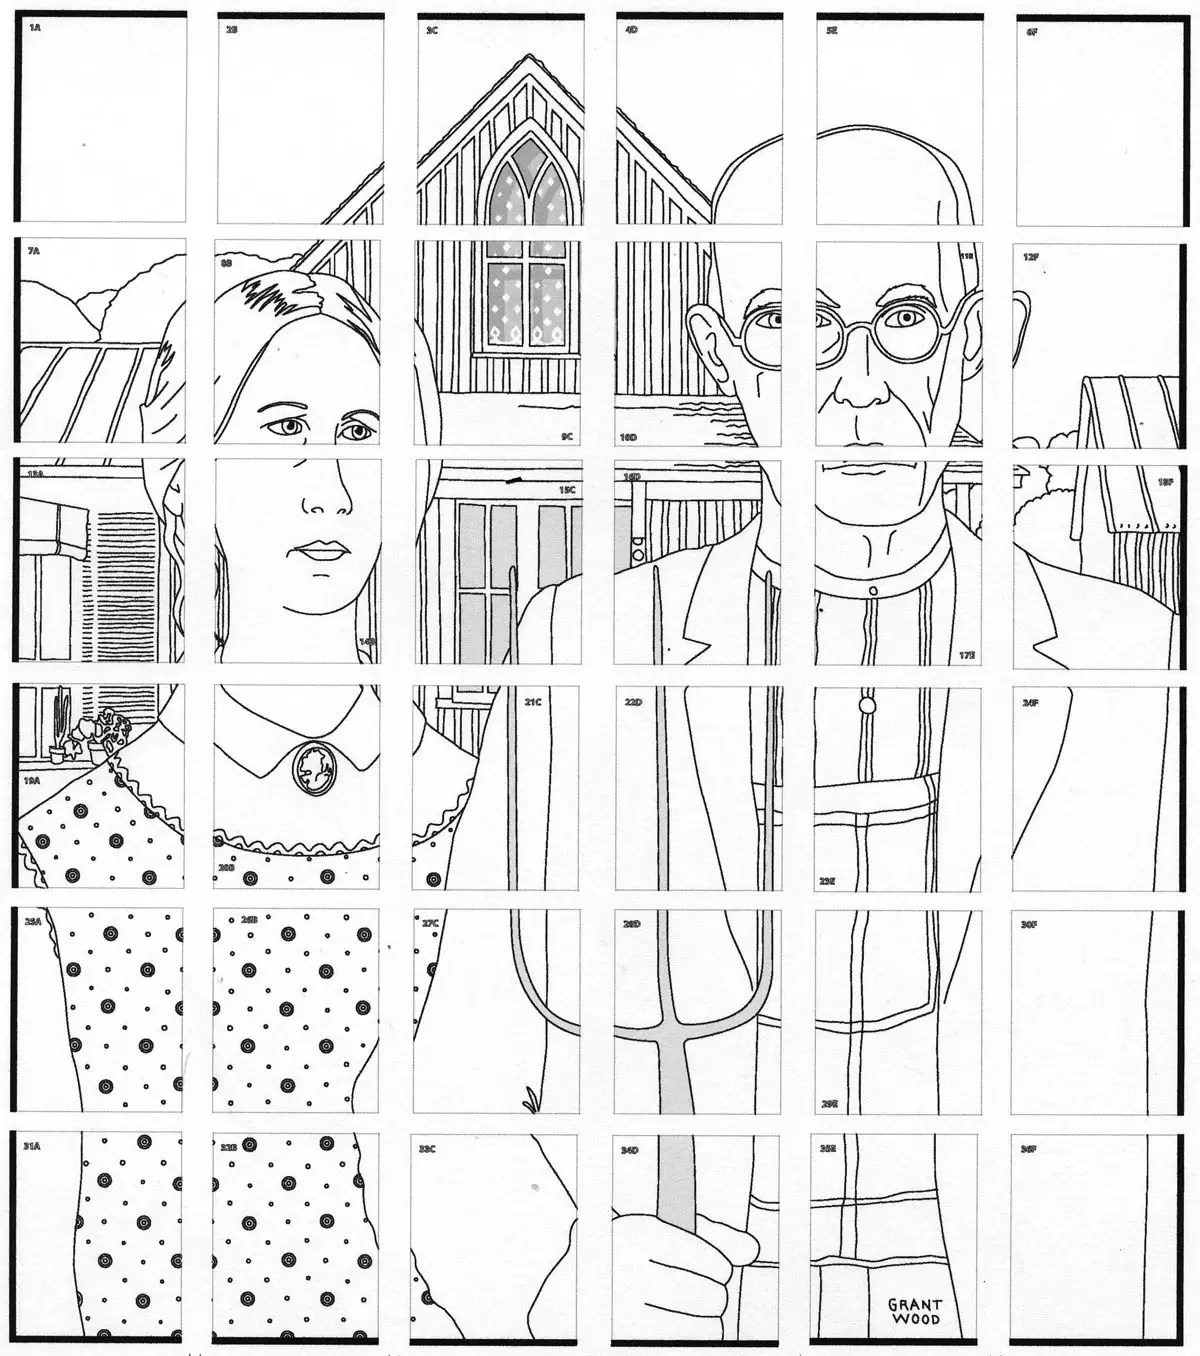 American Gothic Mural · Art Projects for Kids